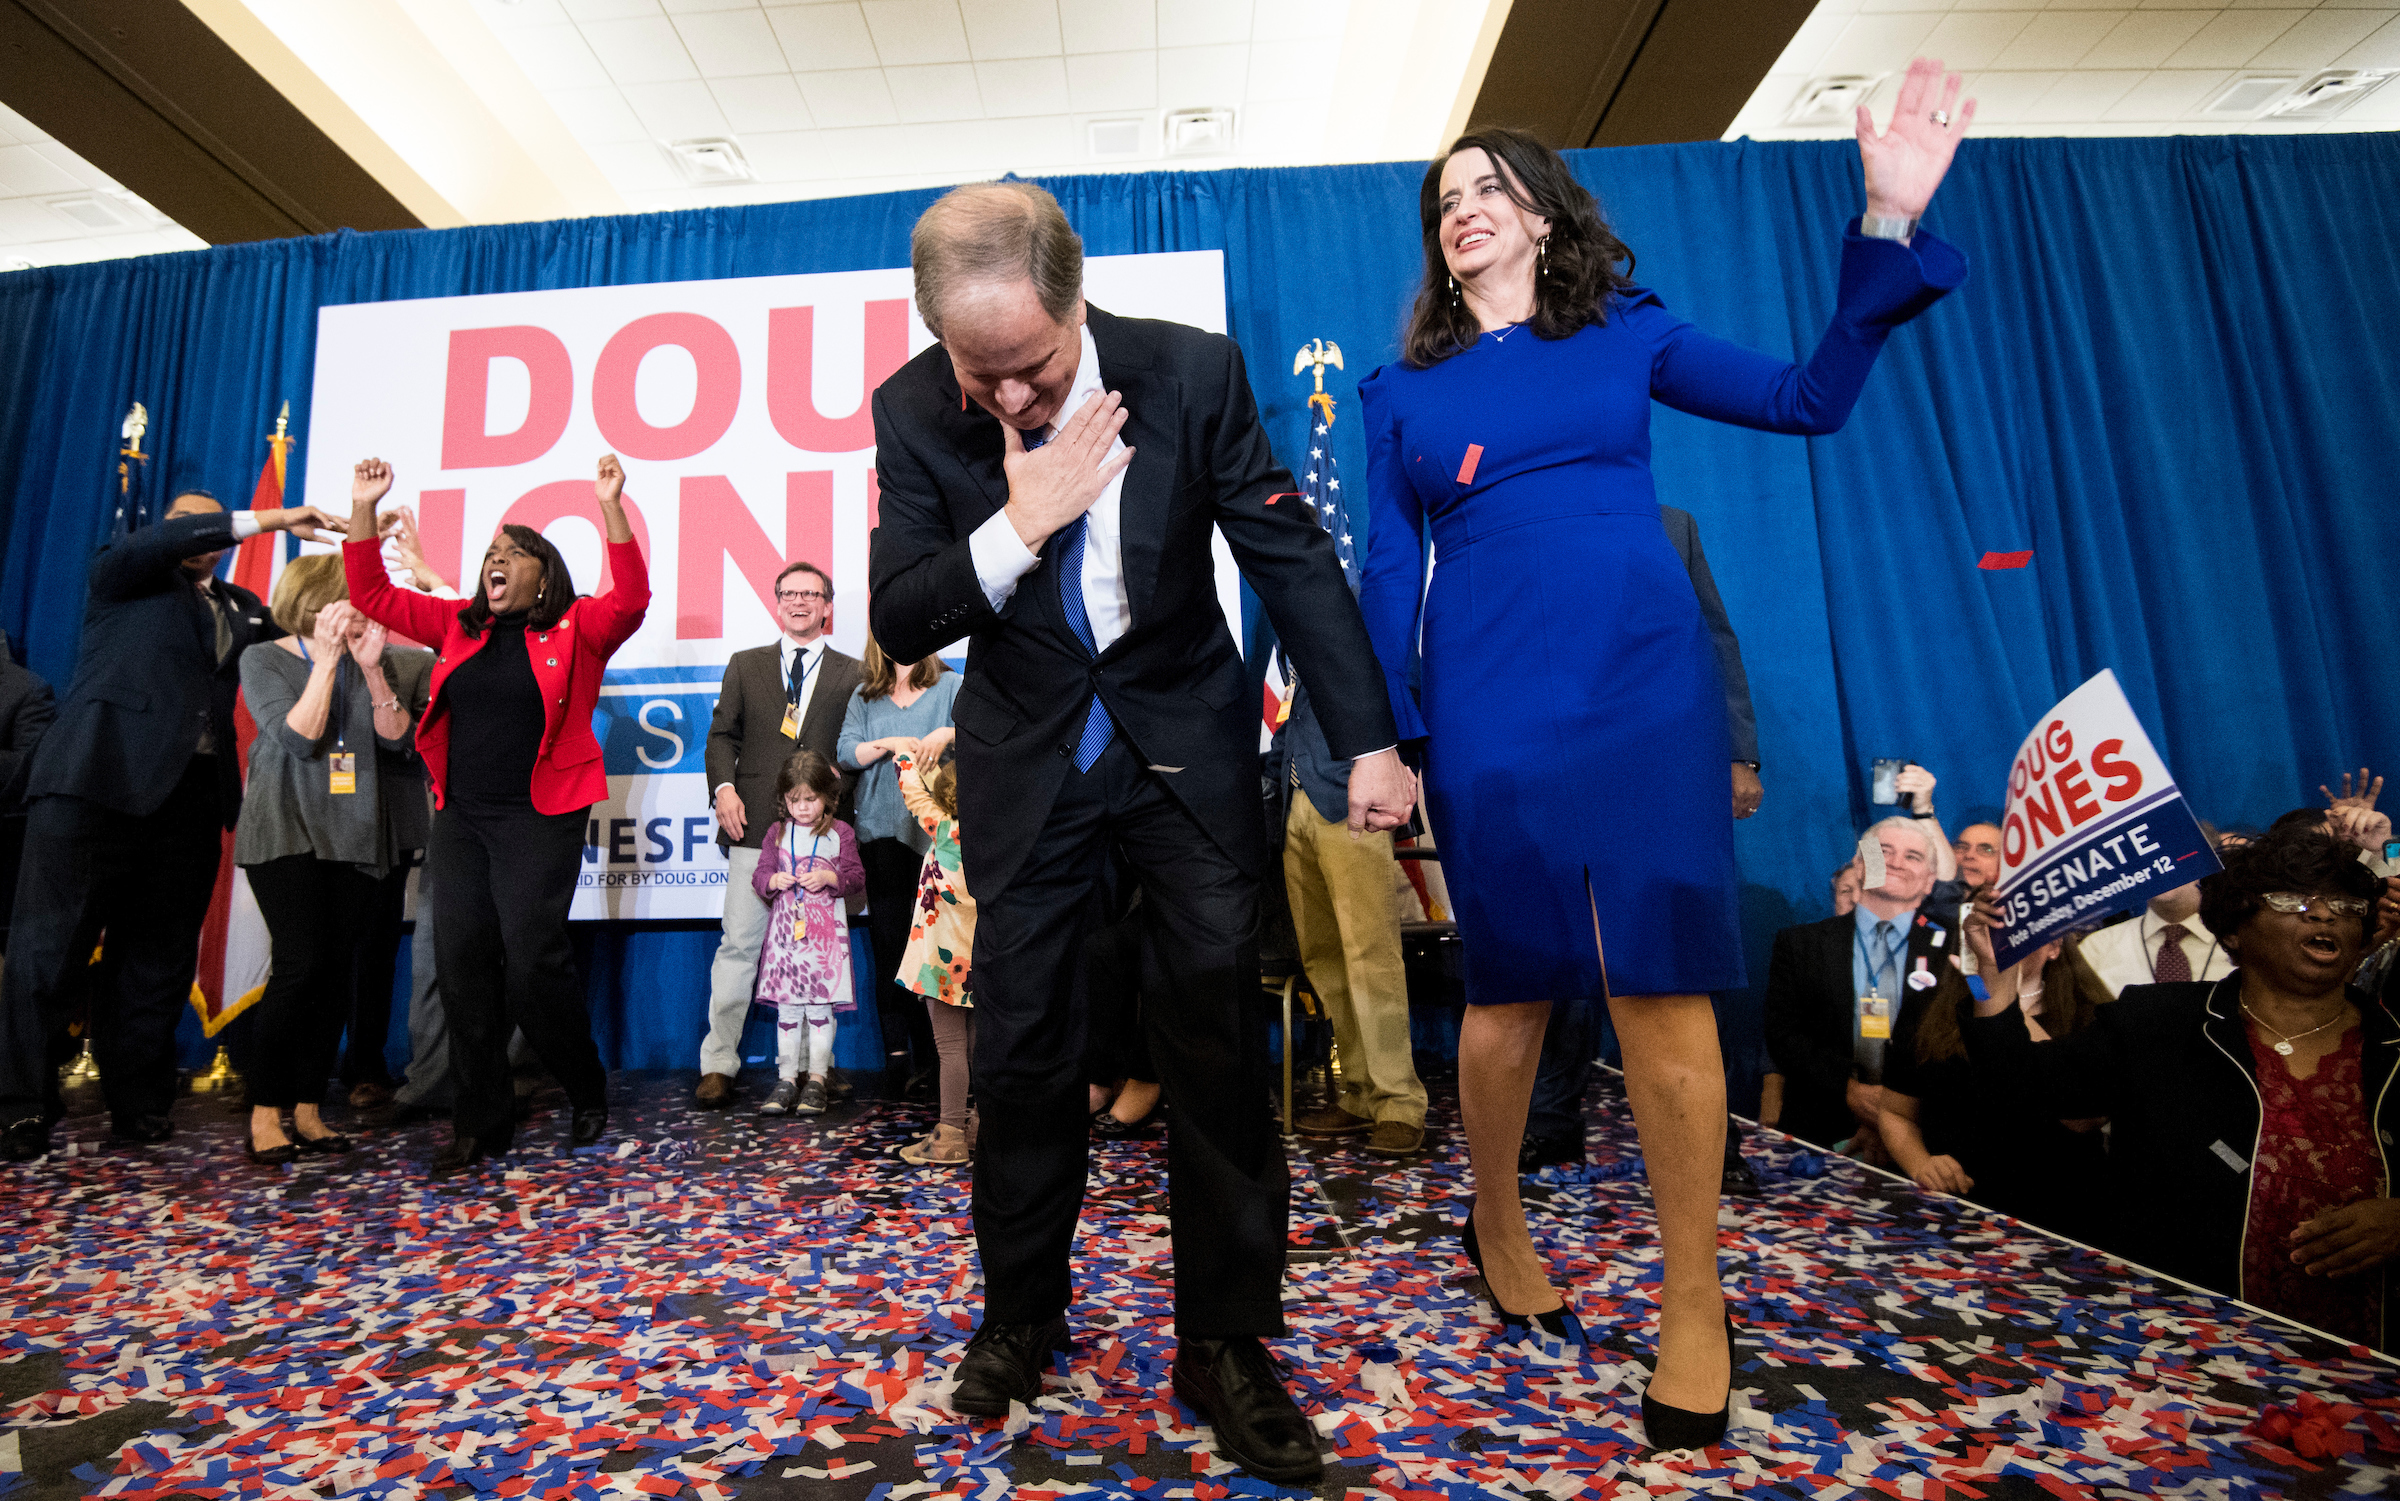 Alabama Democrat Doug Jones and his wife celebrate his victory over Judge Roy Moore at the Sheraton in Birmingham, Ala., on Tuesday, Dec. 12, 2017. Jones is faced off against Judge Roy Moore in a special election for Jeff Sessions' seat in the U.S. Senate. (Bill Clark/CQ Roll Call)